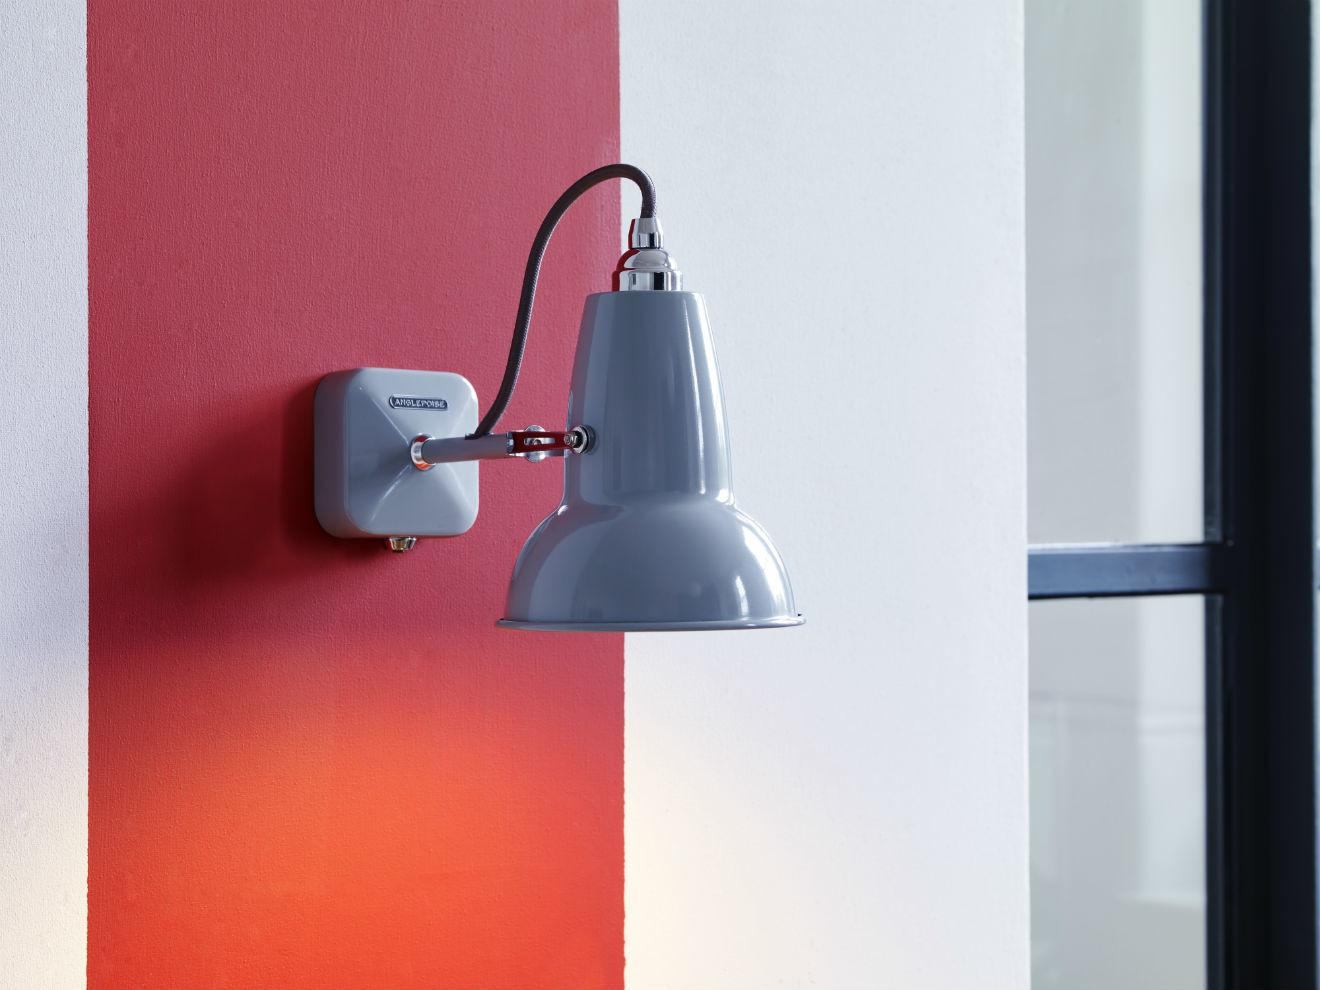 Anglepoise Mini Iconic Retro Lamps Made Smaller Home